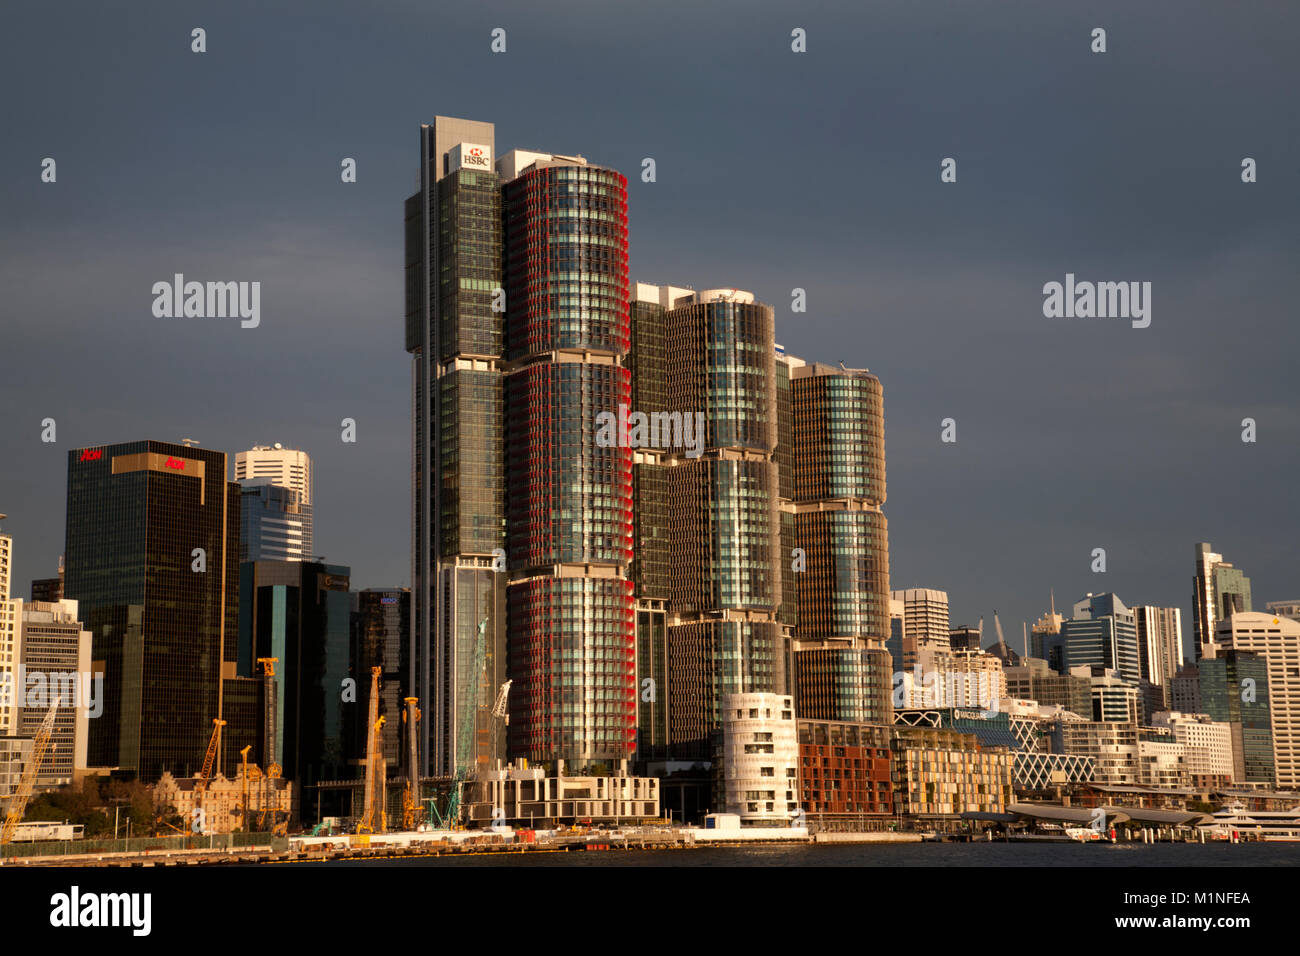 barangaroo darling harbour sydney new south wales australia - Stock Image